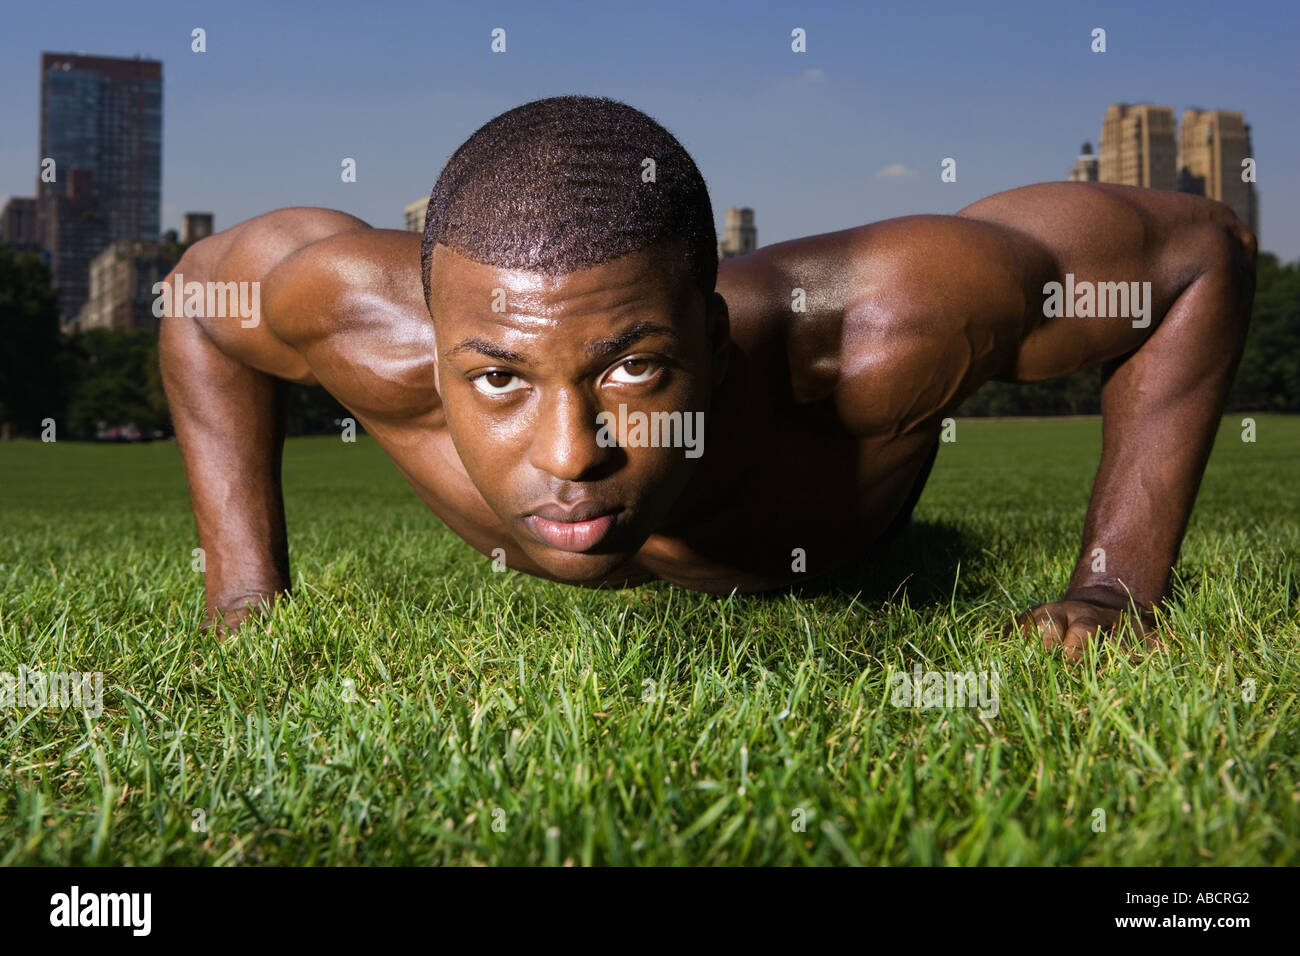 Man doing press ups in the park - Stock Image